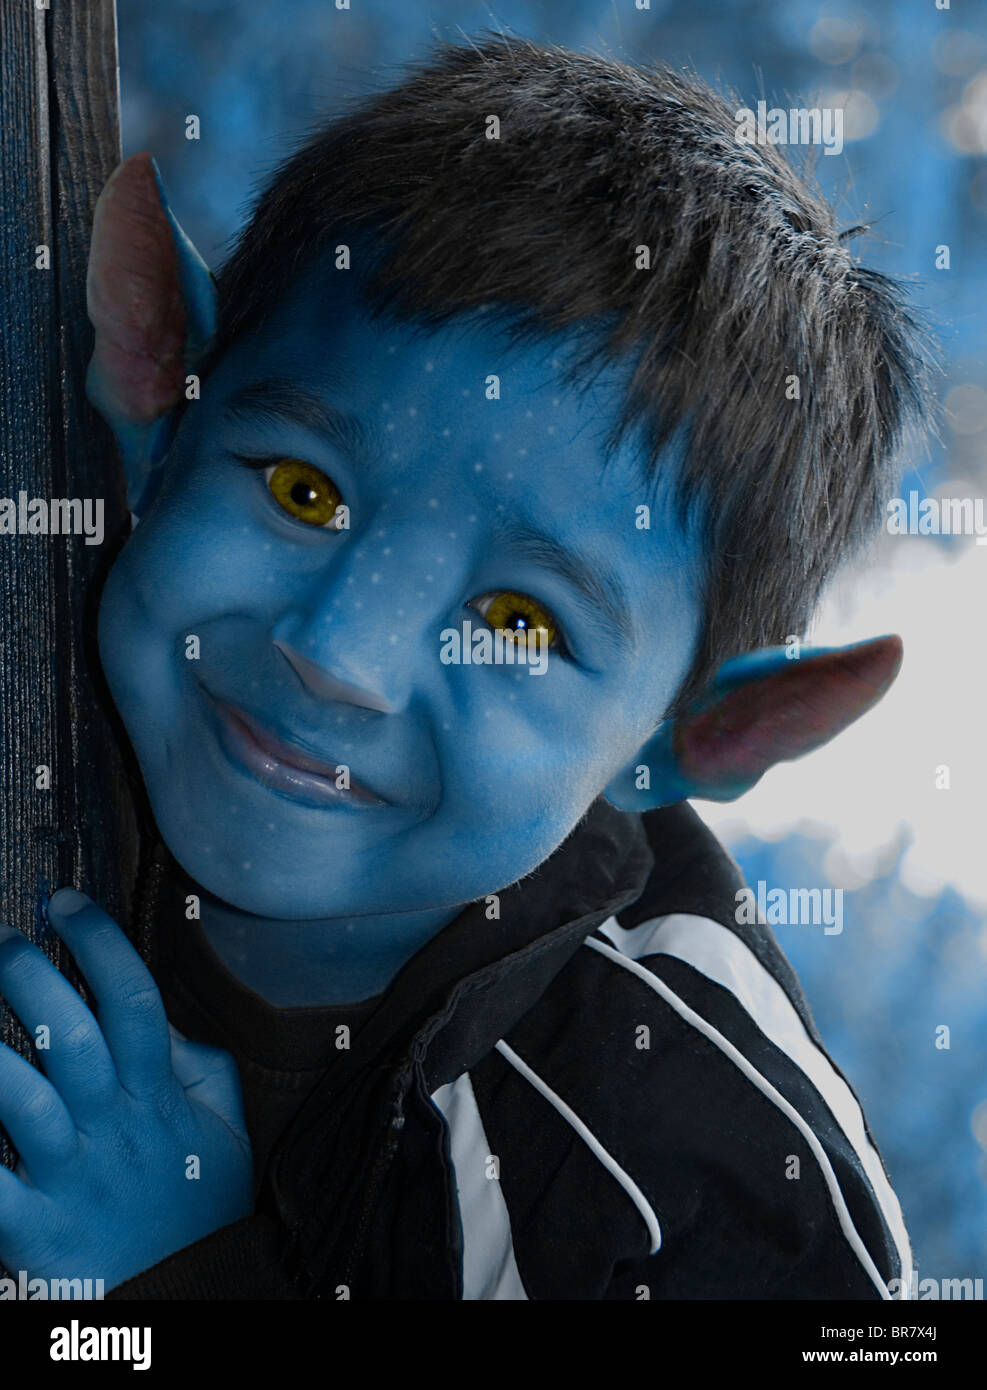 A young avatar boy. - Stock Image